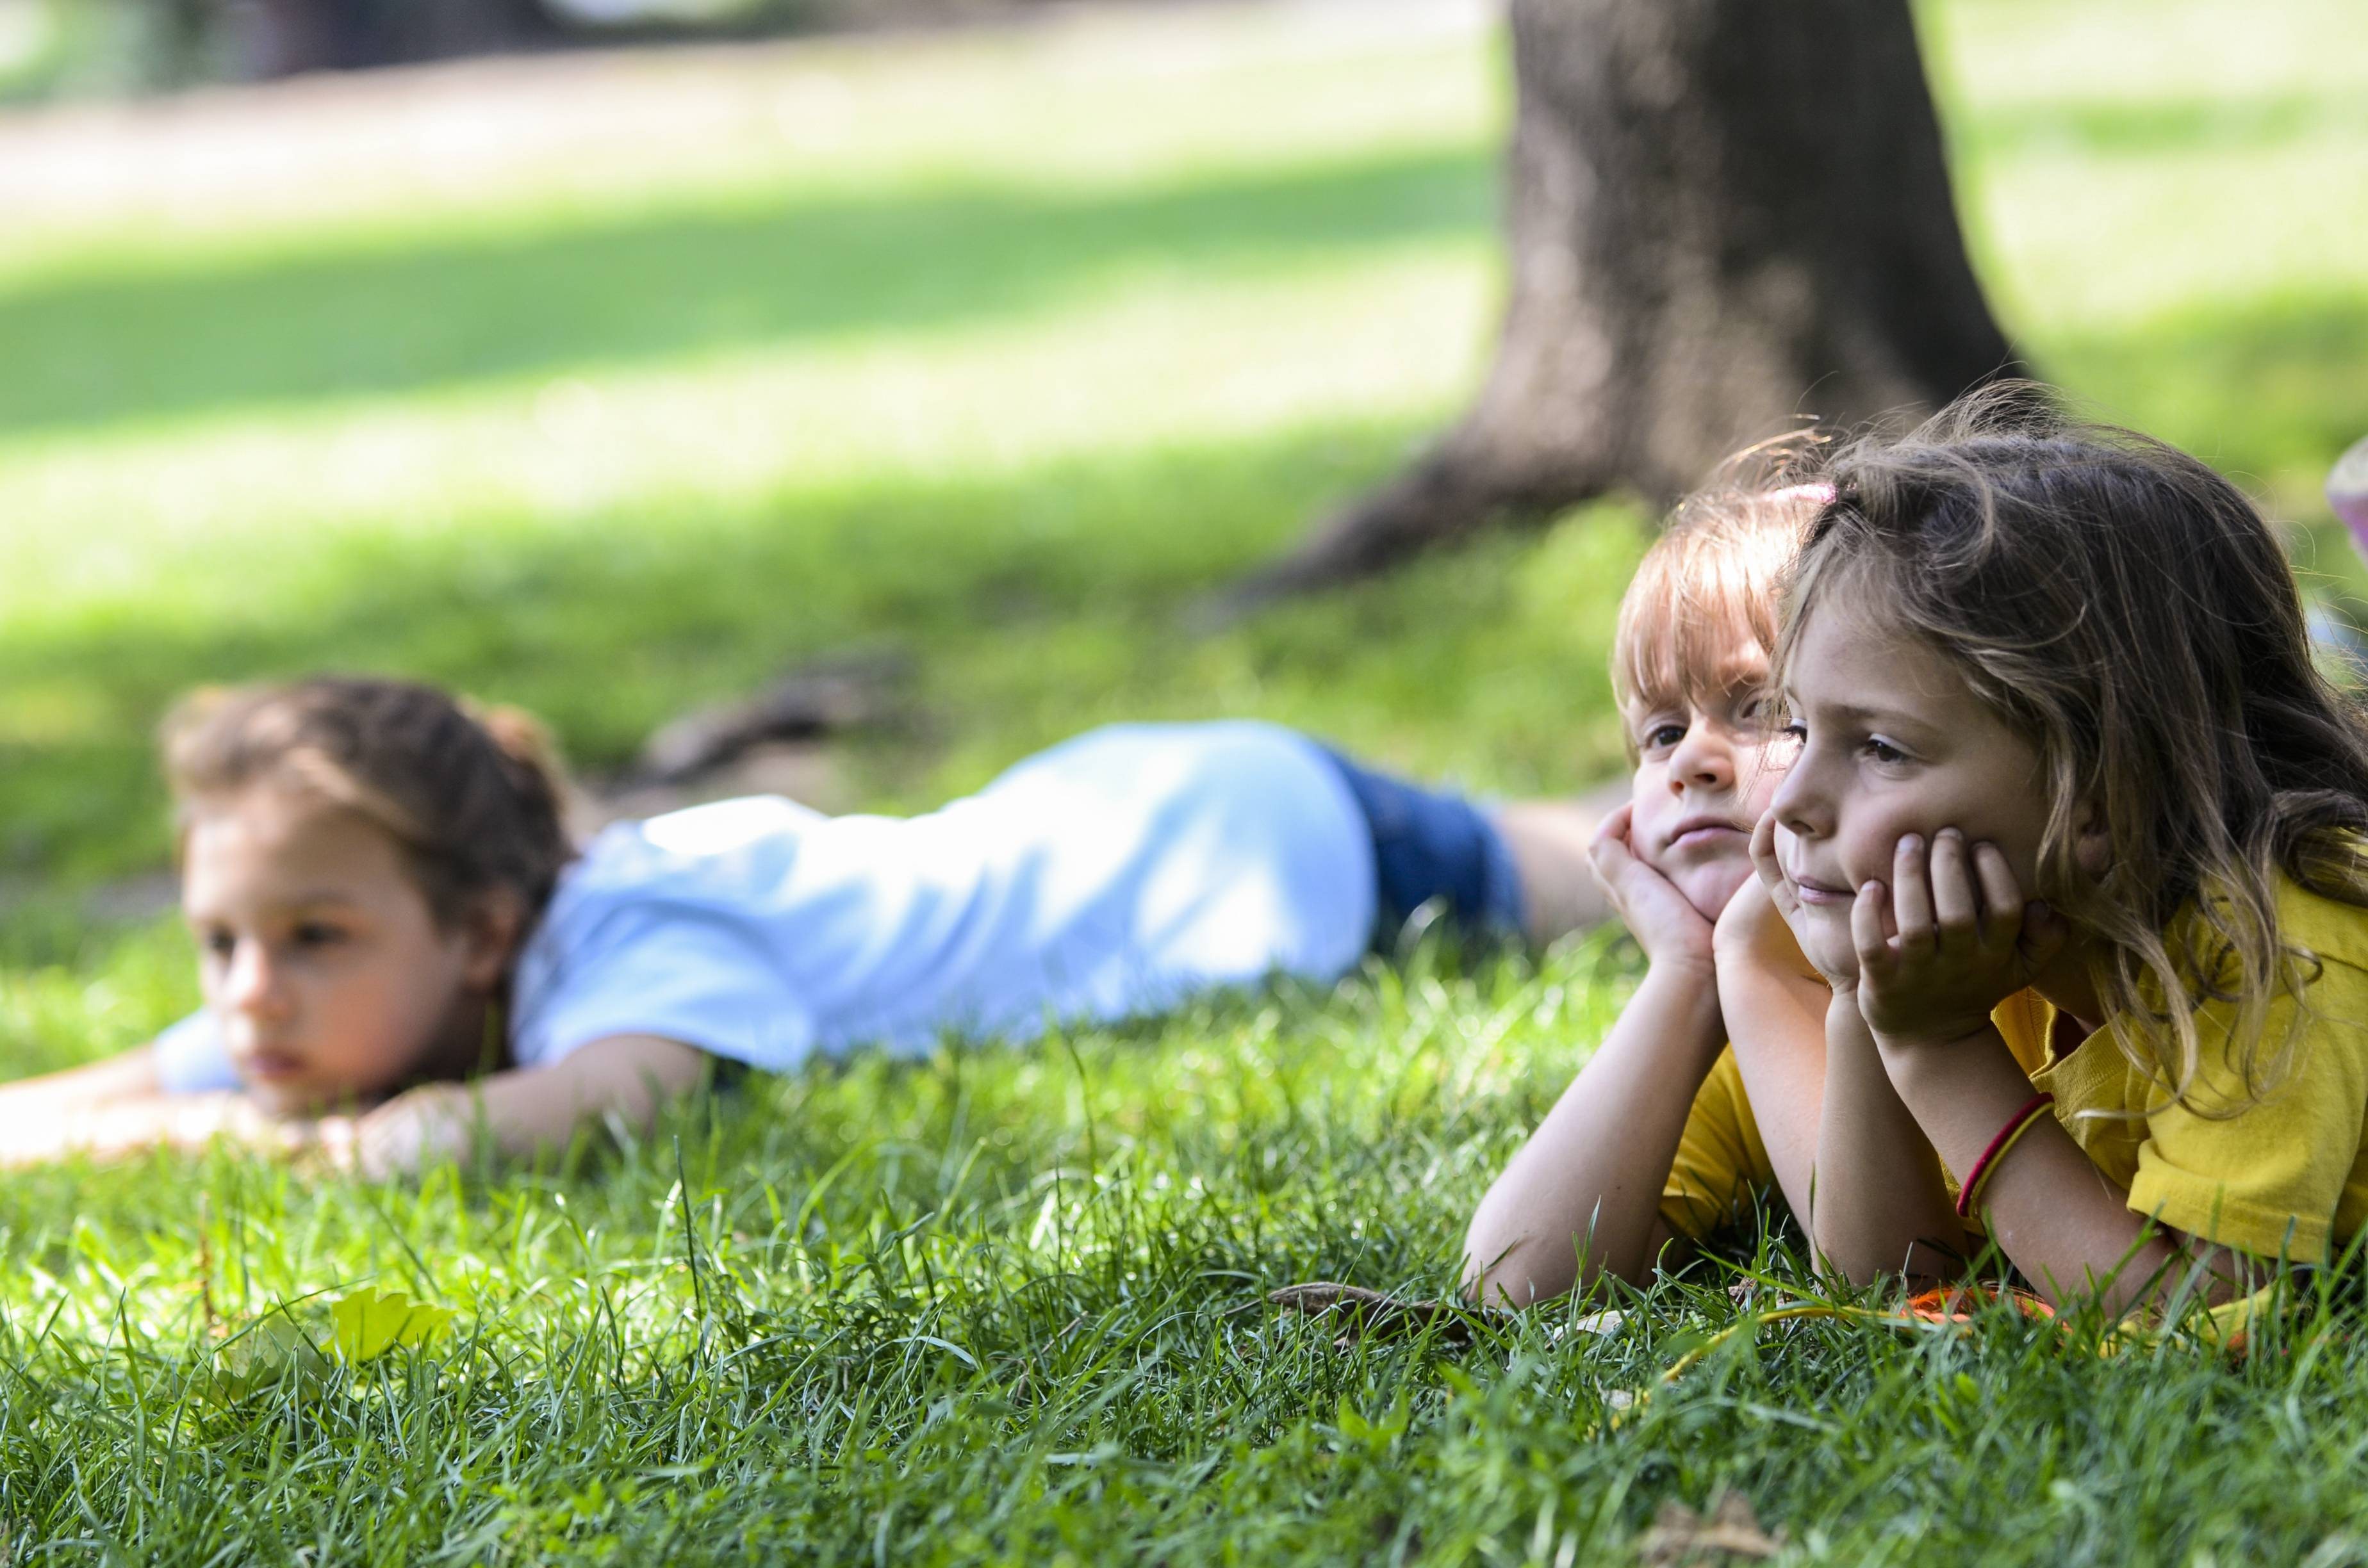 Ava Lilke, 12, Izabella Boniak, 5, and Kaelynn Woloszyk, 5, all of St. Charles, left to right, lie in the grass underneath a tree at Pottawatomie Park in St. Charles on Monday. The girls are part of the park district's summer camp, and the counselors tried to keep them cool by playing games underneath shade trees.